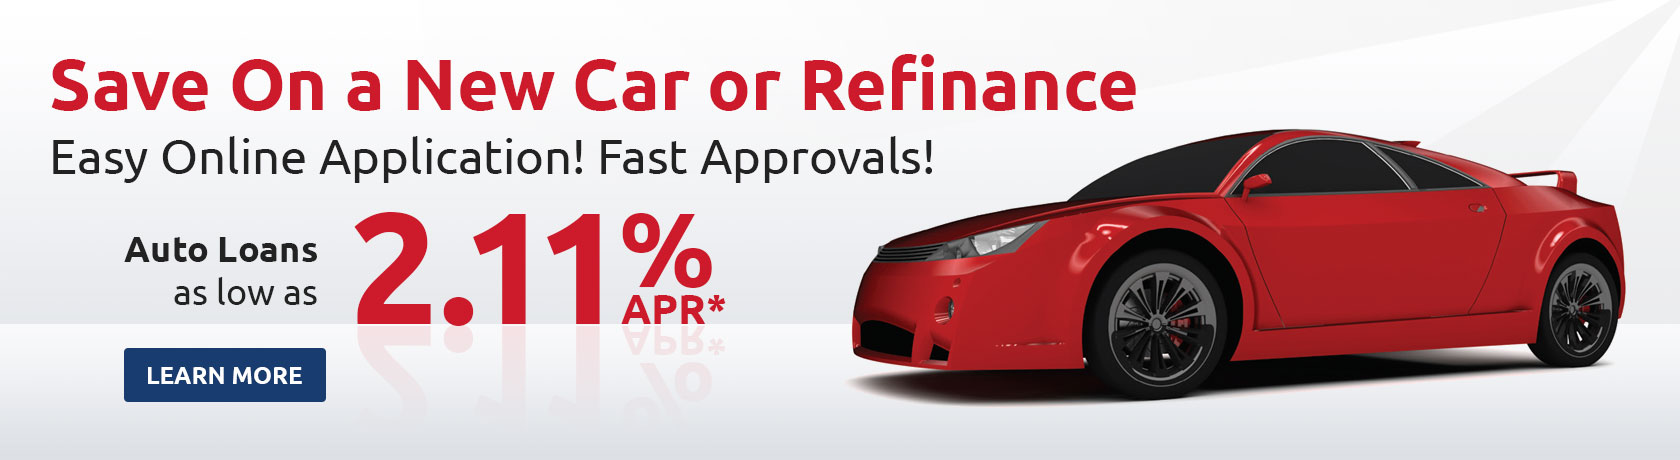 Save on a new car or refinance. Easy online application! Fast Approvals! Auto Loans as low as 2.11% APR*. Learn more